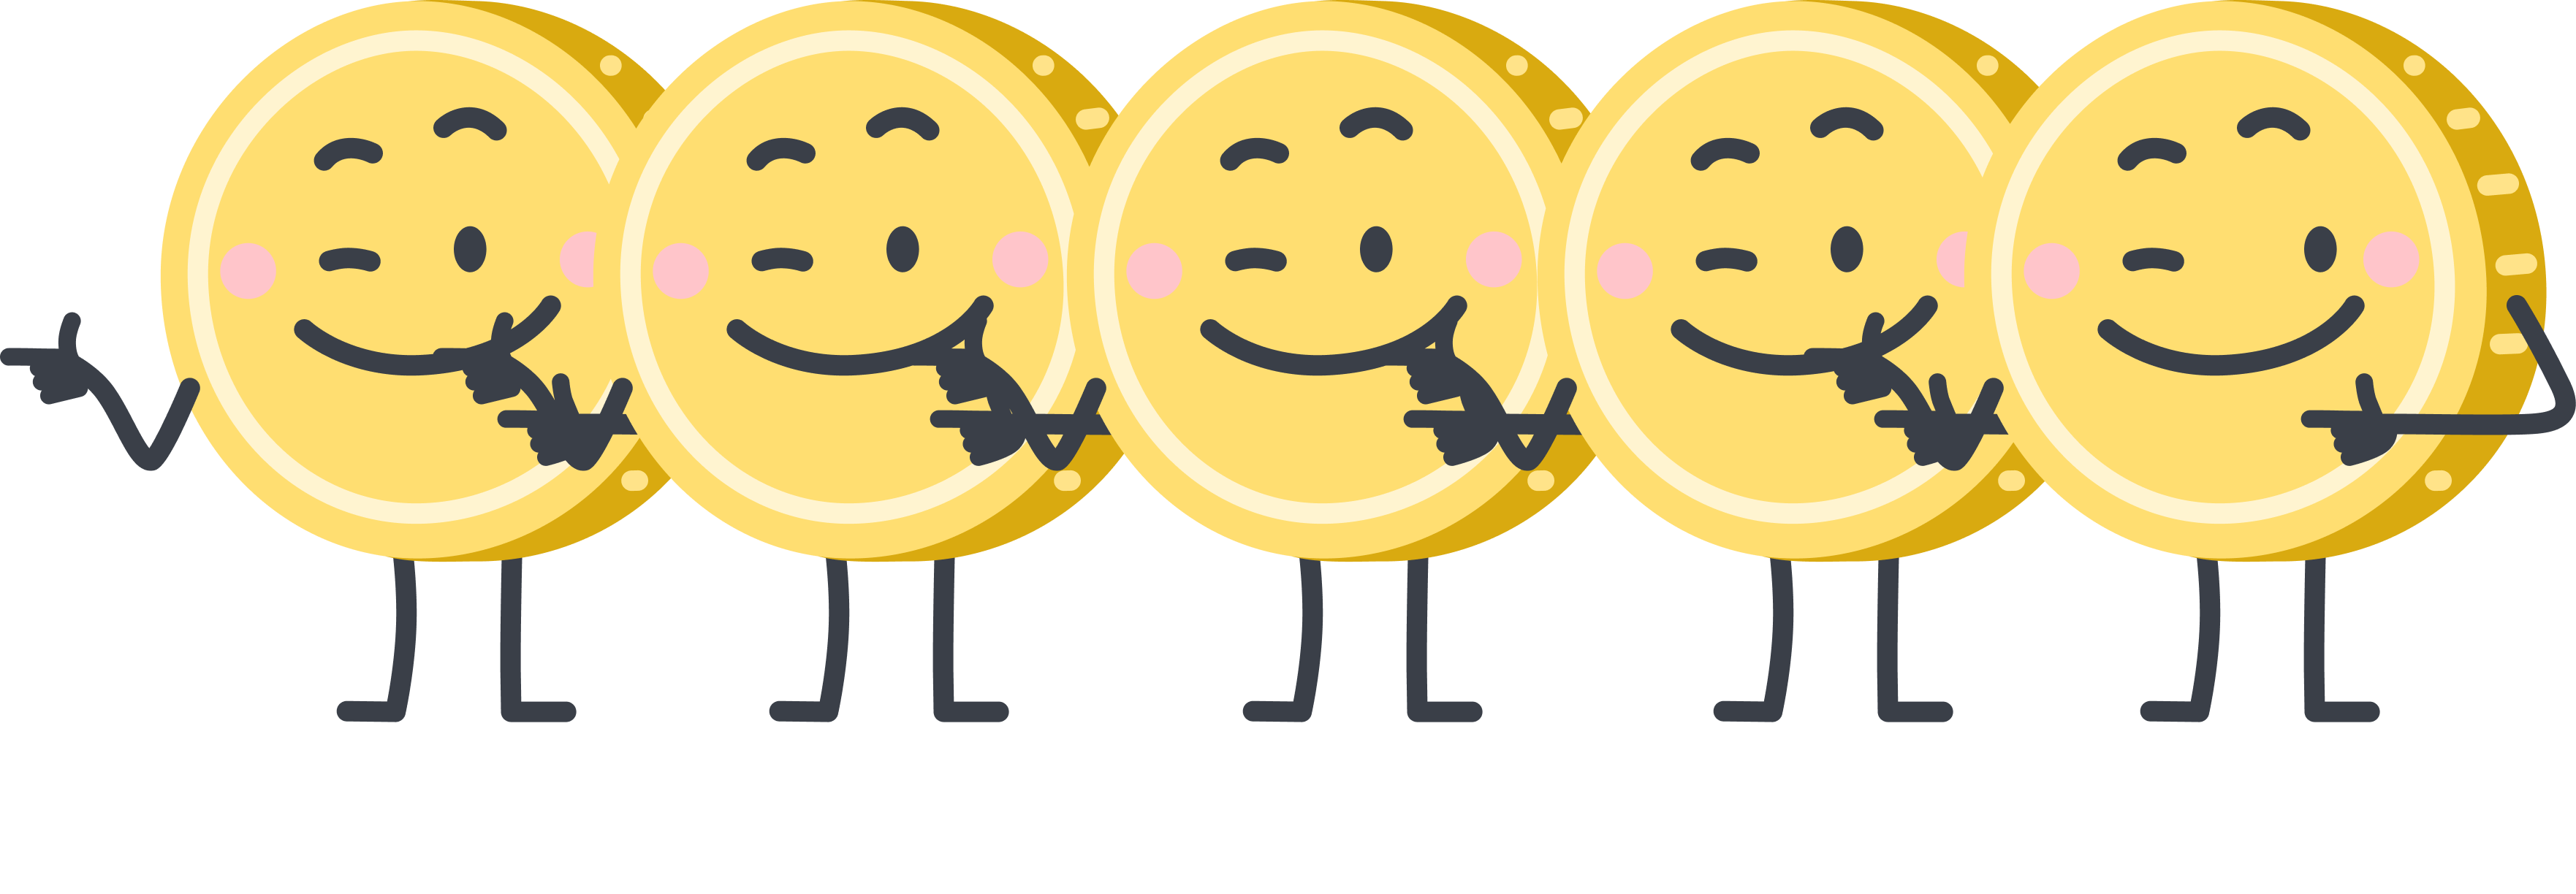 Coin character